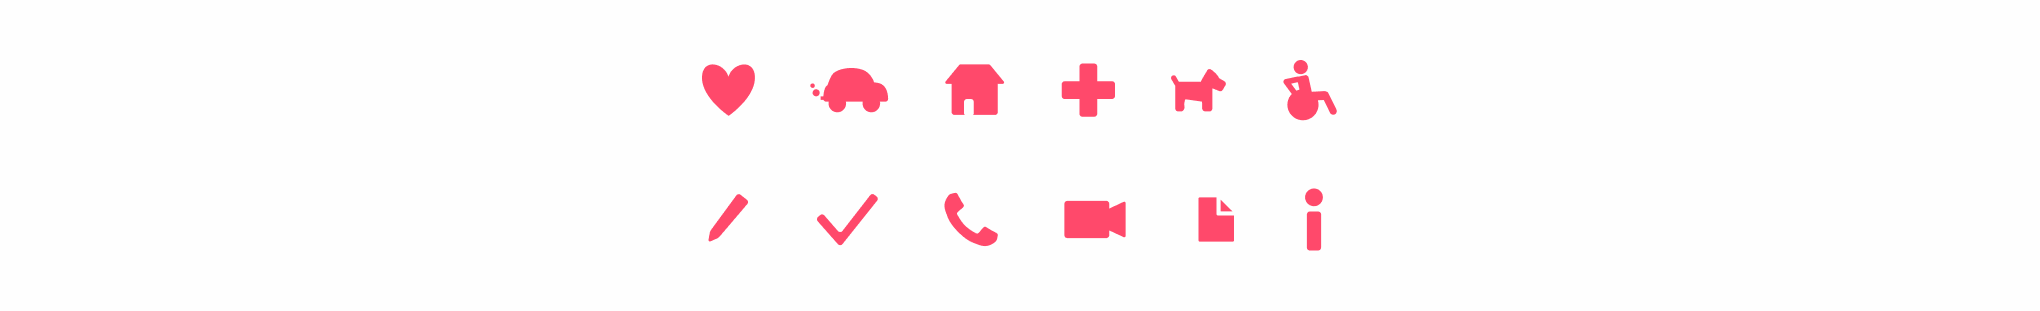 Styleguide icons